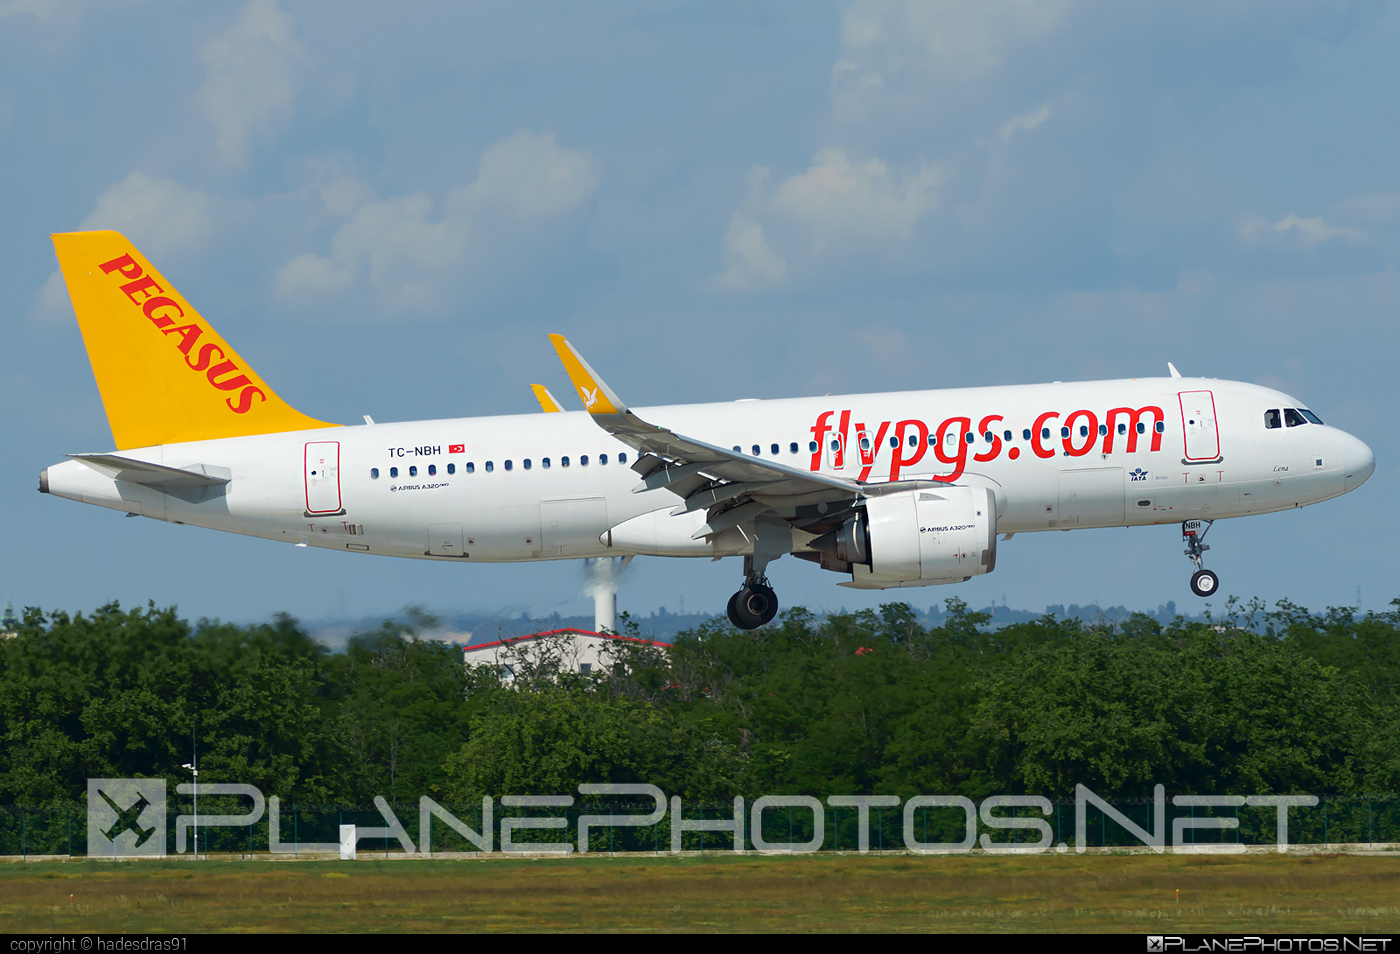 Airbus A320-251N - TC-NBH operated by Pegasus Airlines #a320 #a320family #a320neo #airbus #airbus320